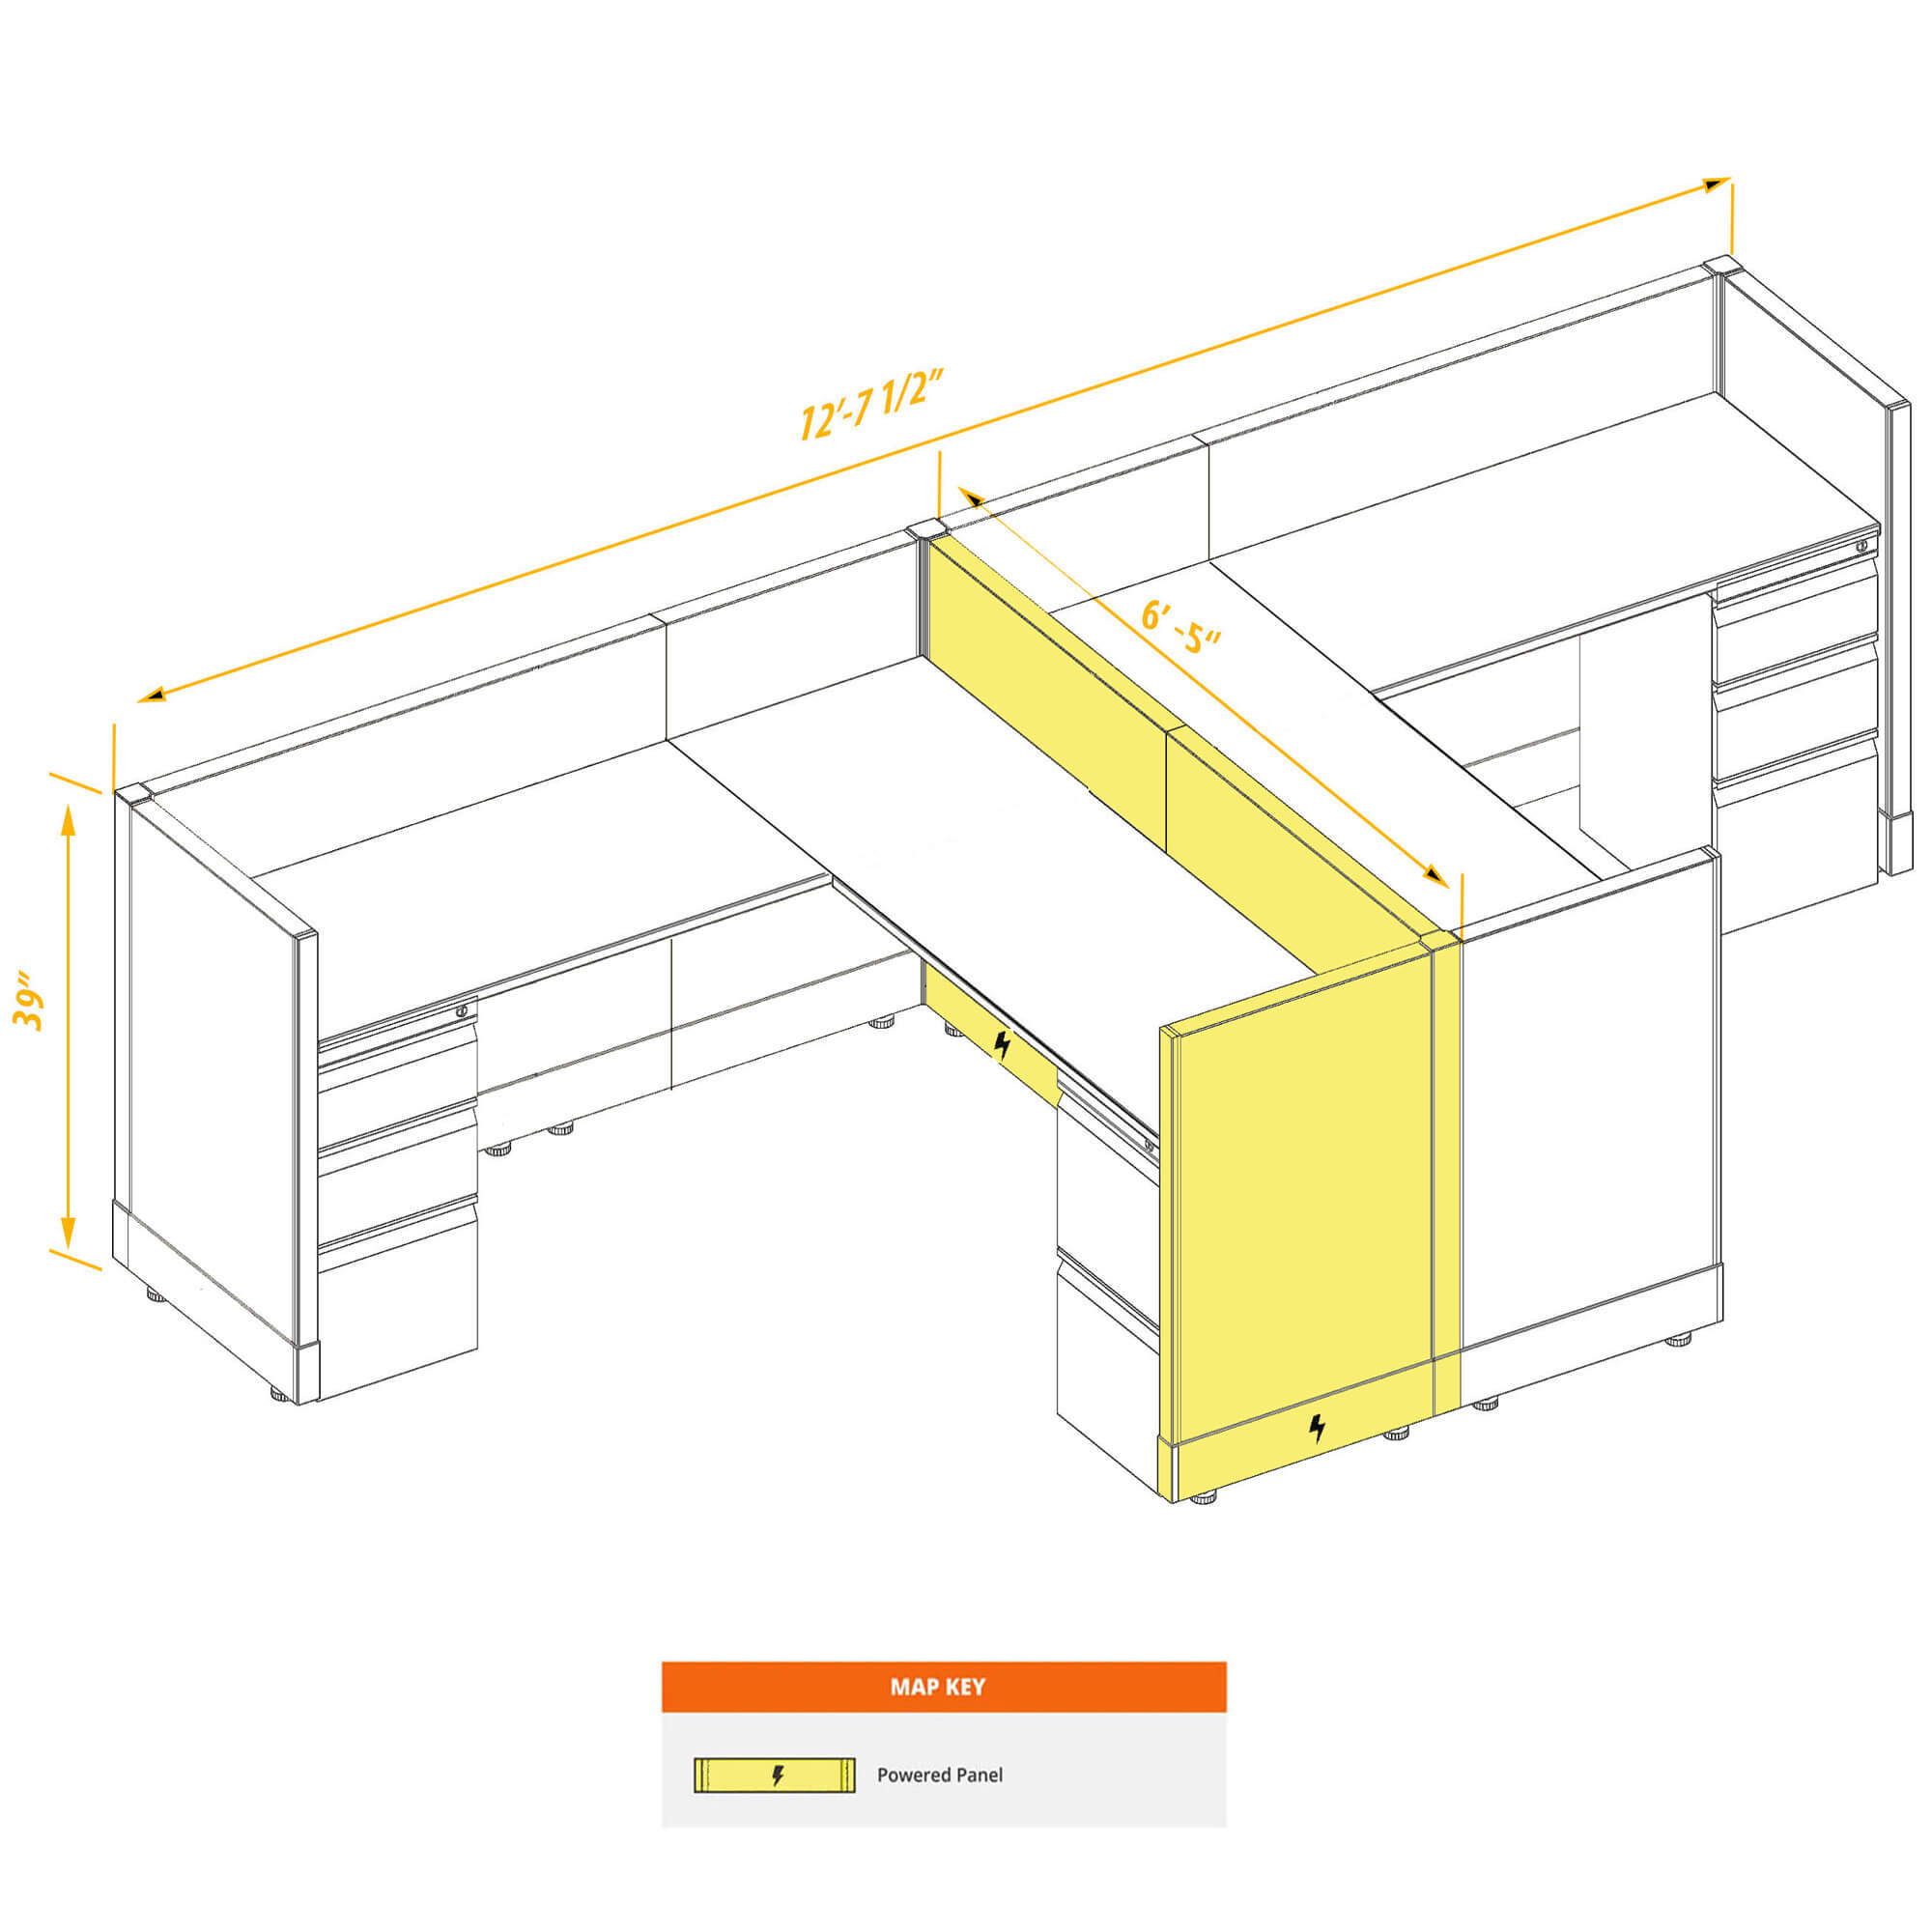 Modular furniture CUB 2a 39 P 66 PSO